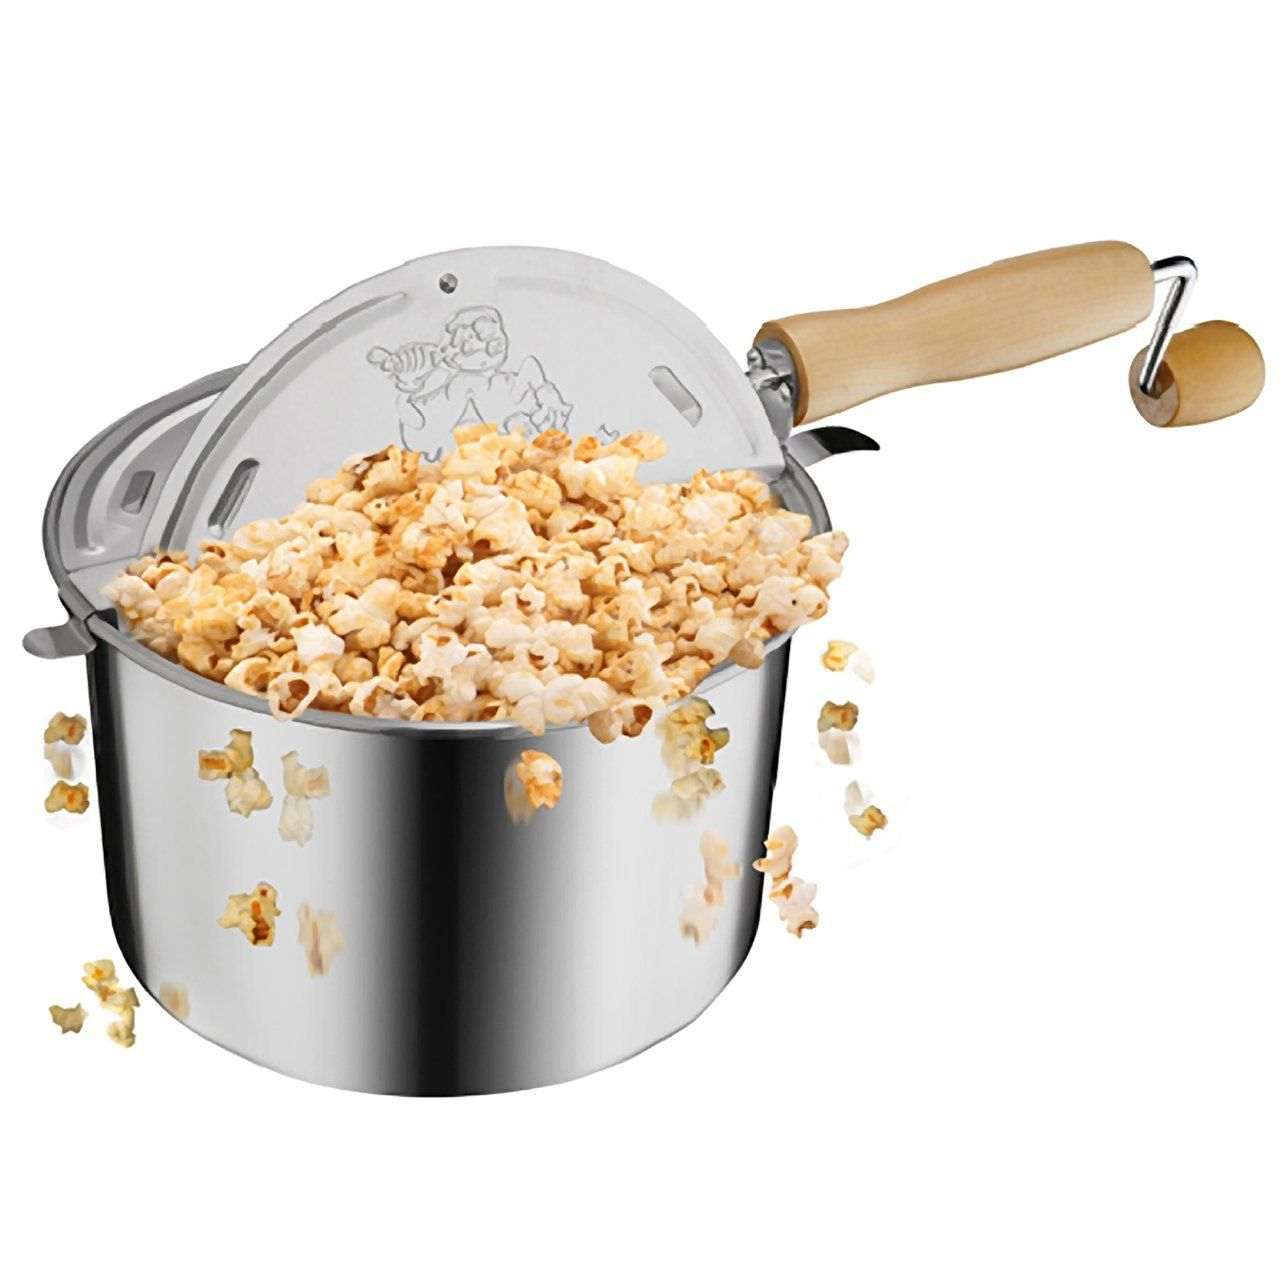 Finally decided on a nonplastic popcorn maker, hope I can